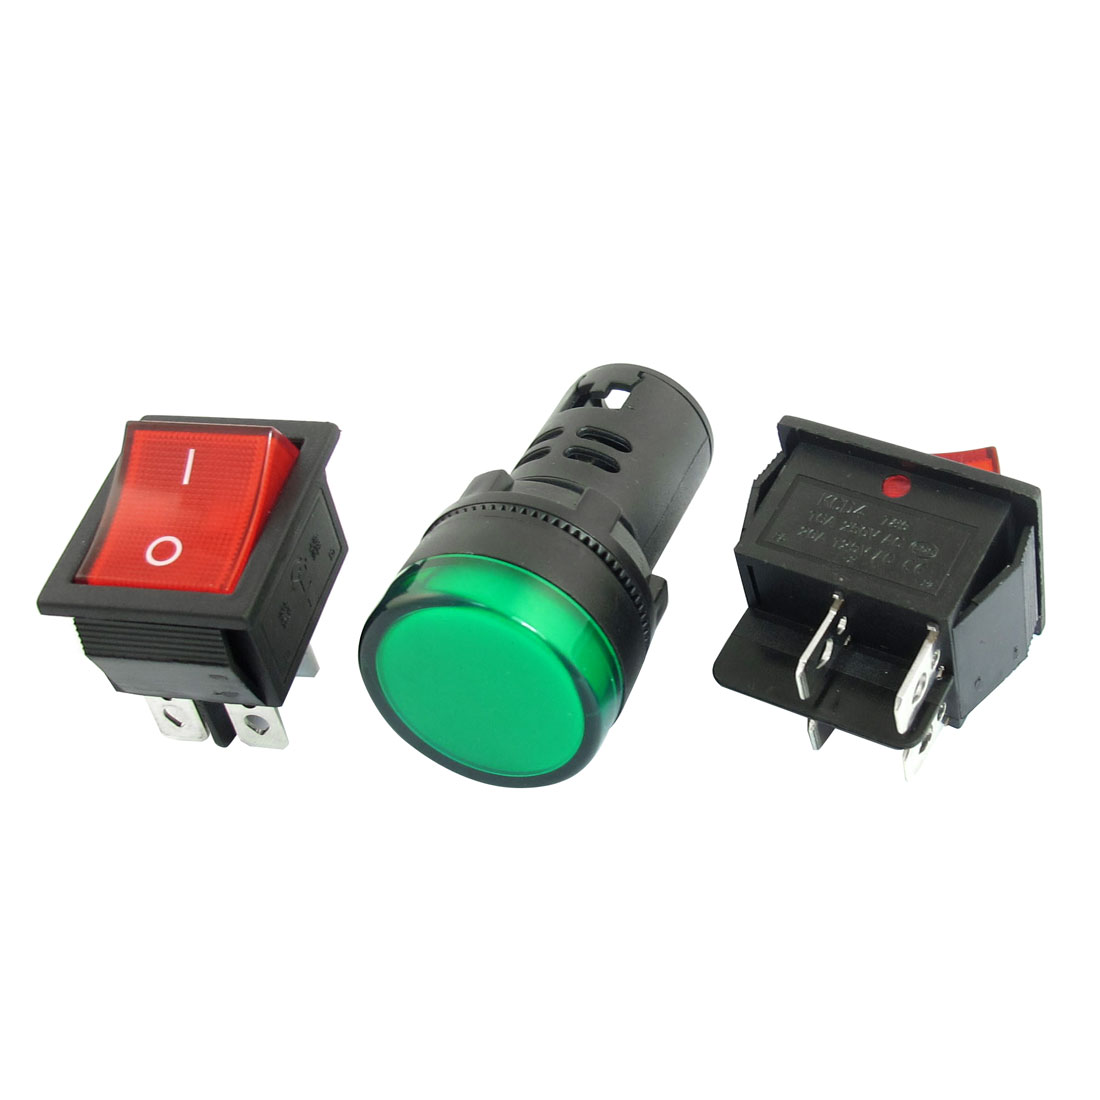 3 in 1 AD16-22D/S AC 12V 20mA Green LED Pilot Light Panel Indicator Lamp + DPST Rocker Switch